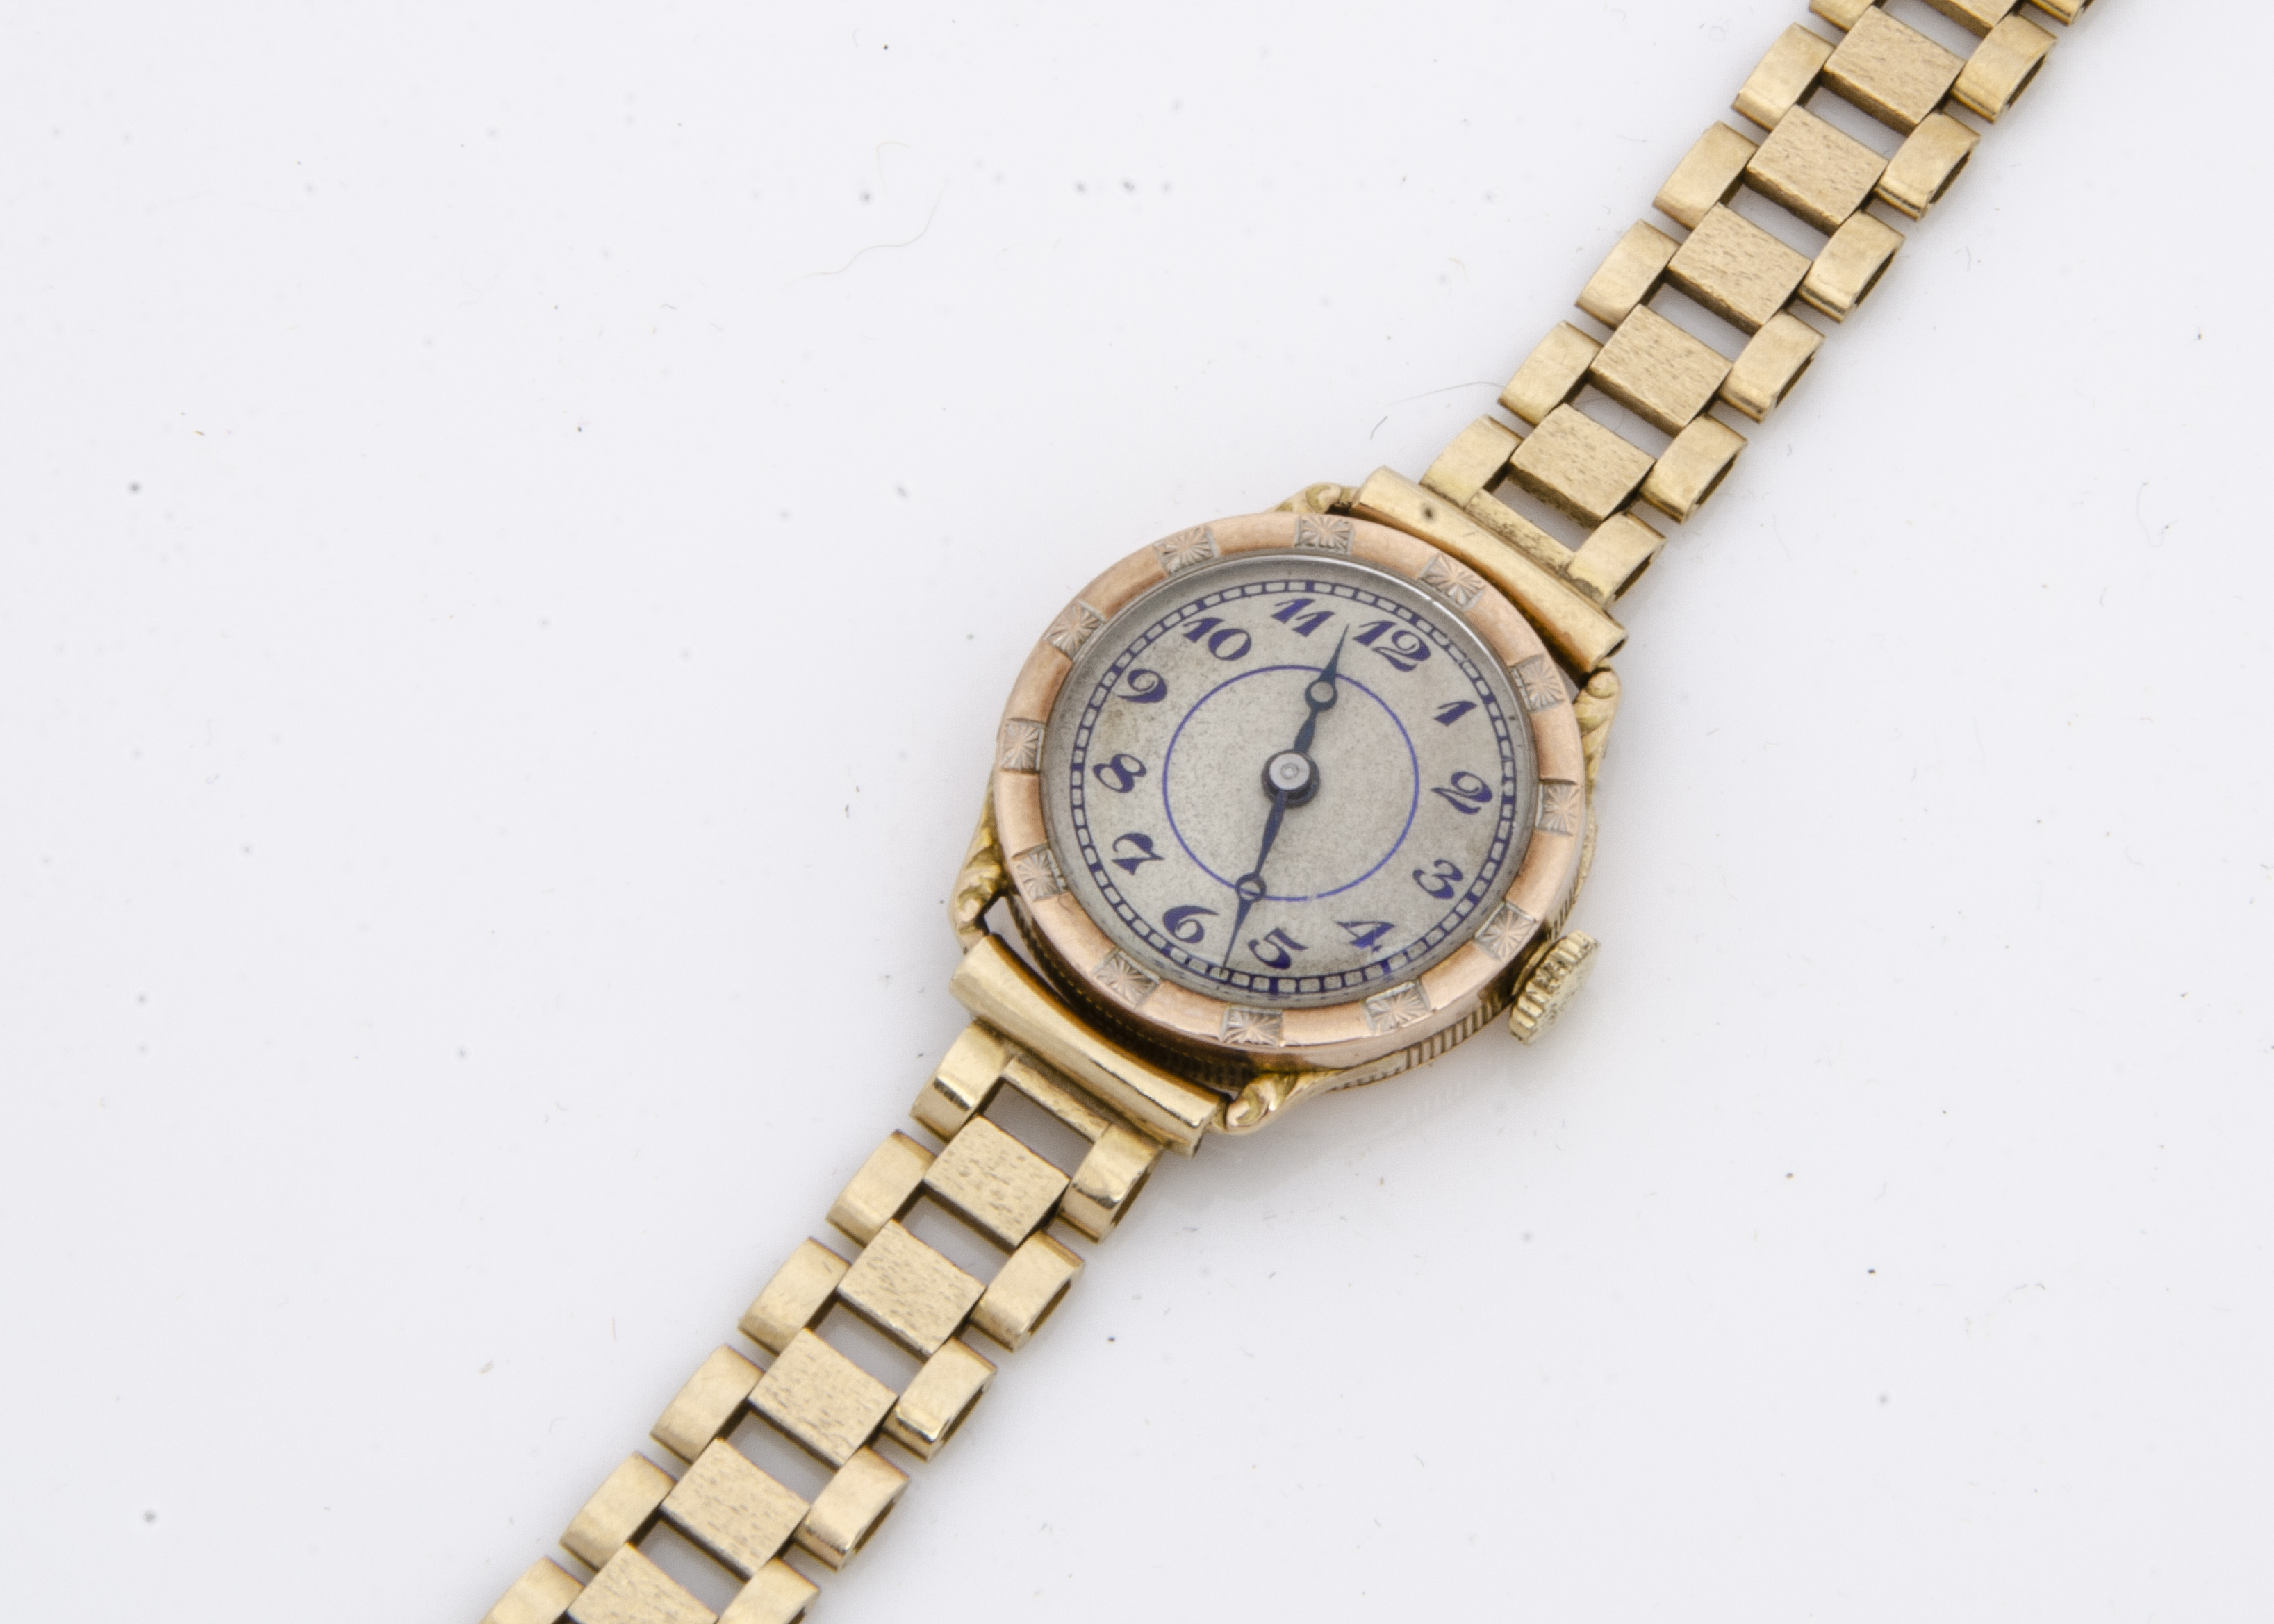 An Art Deco period 9ct gold cased lady's wristwatch, circular 22mm case, hinged snapped, appears